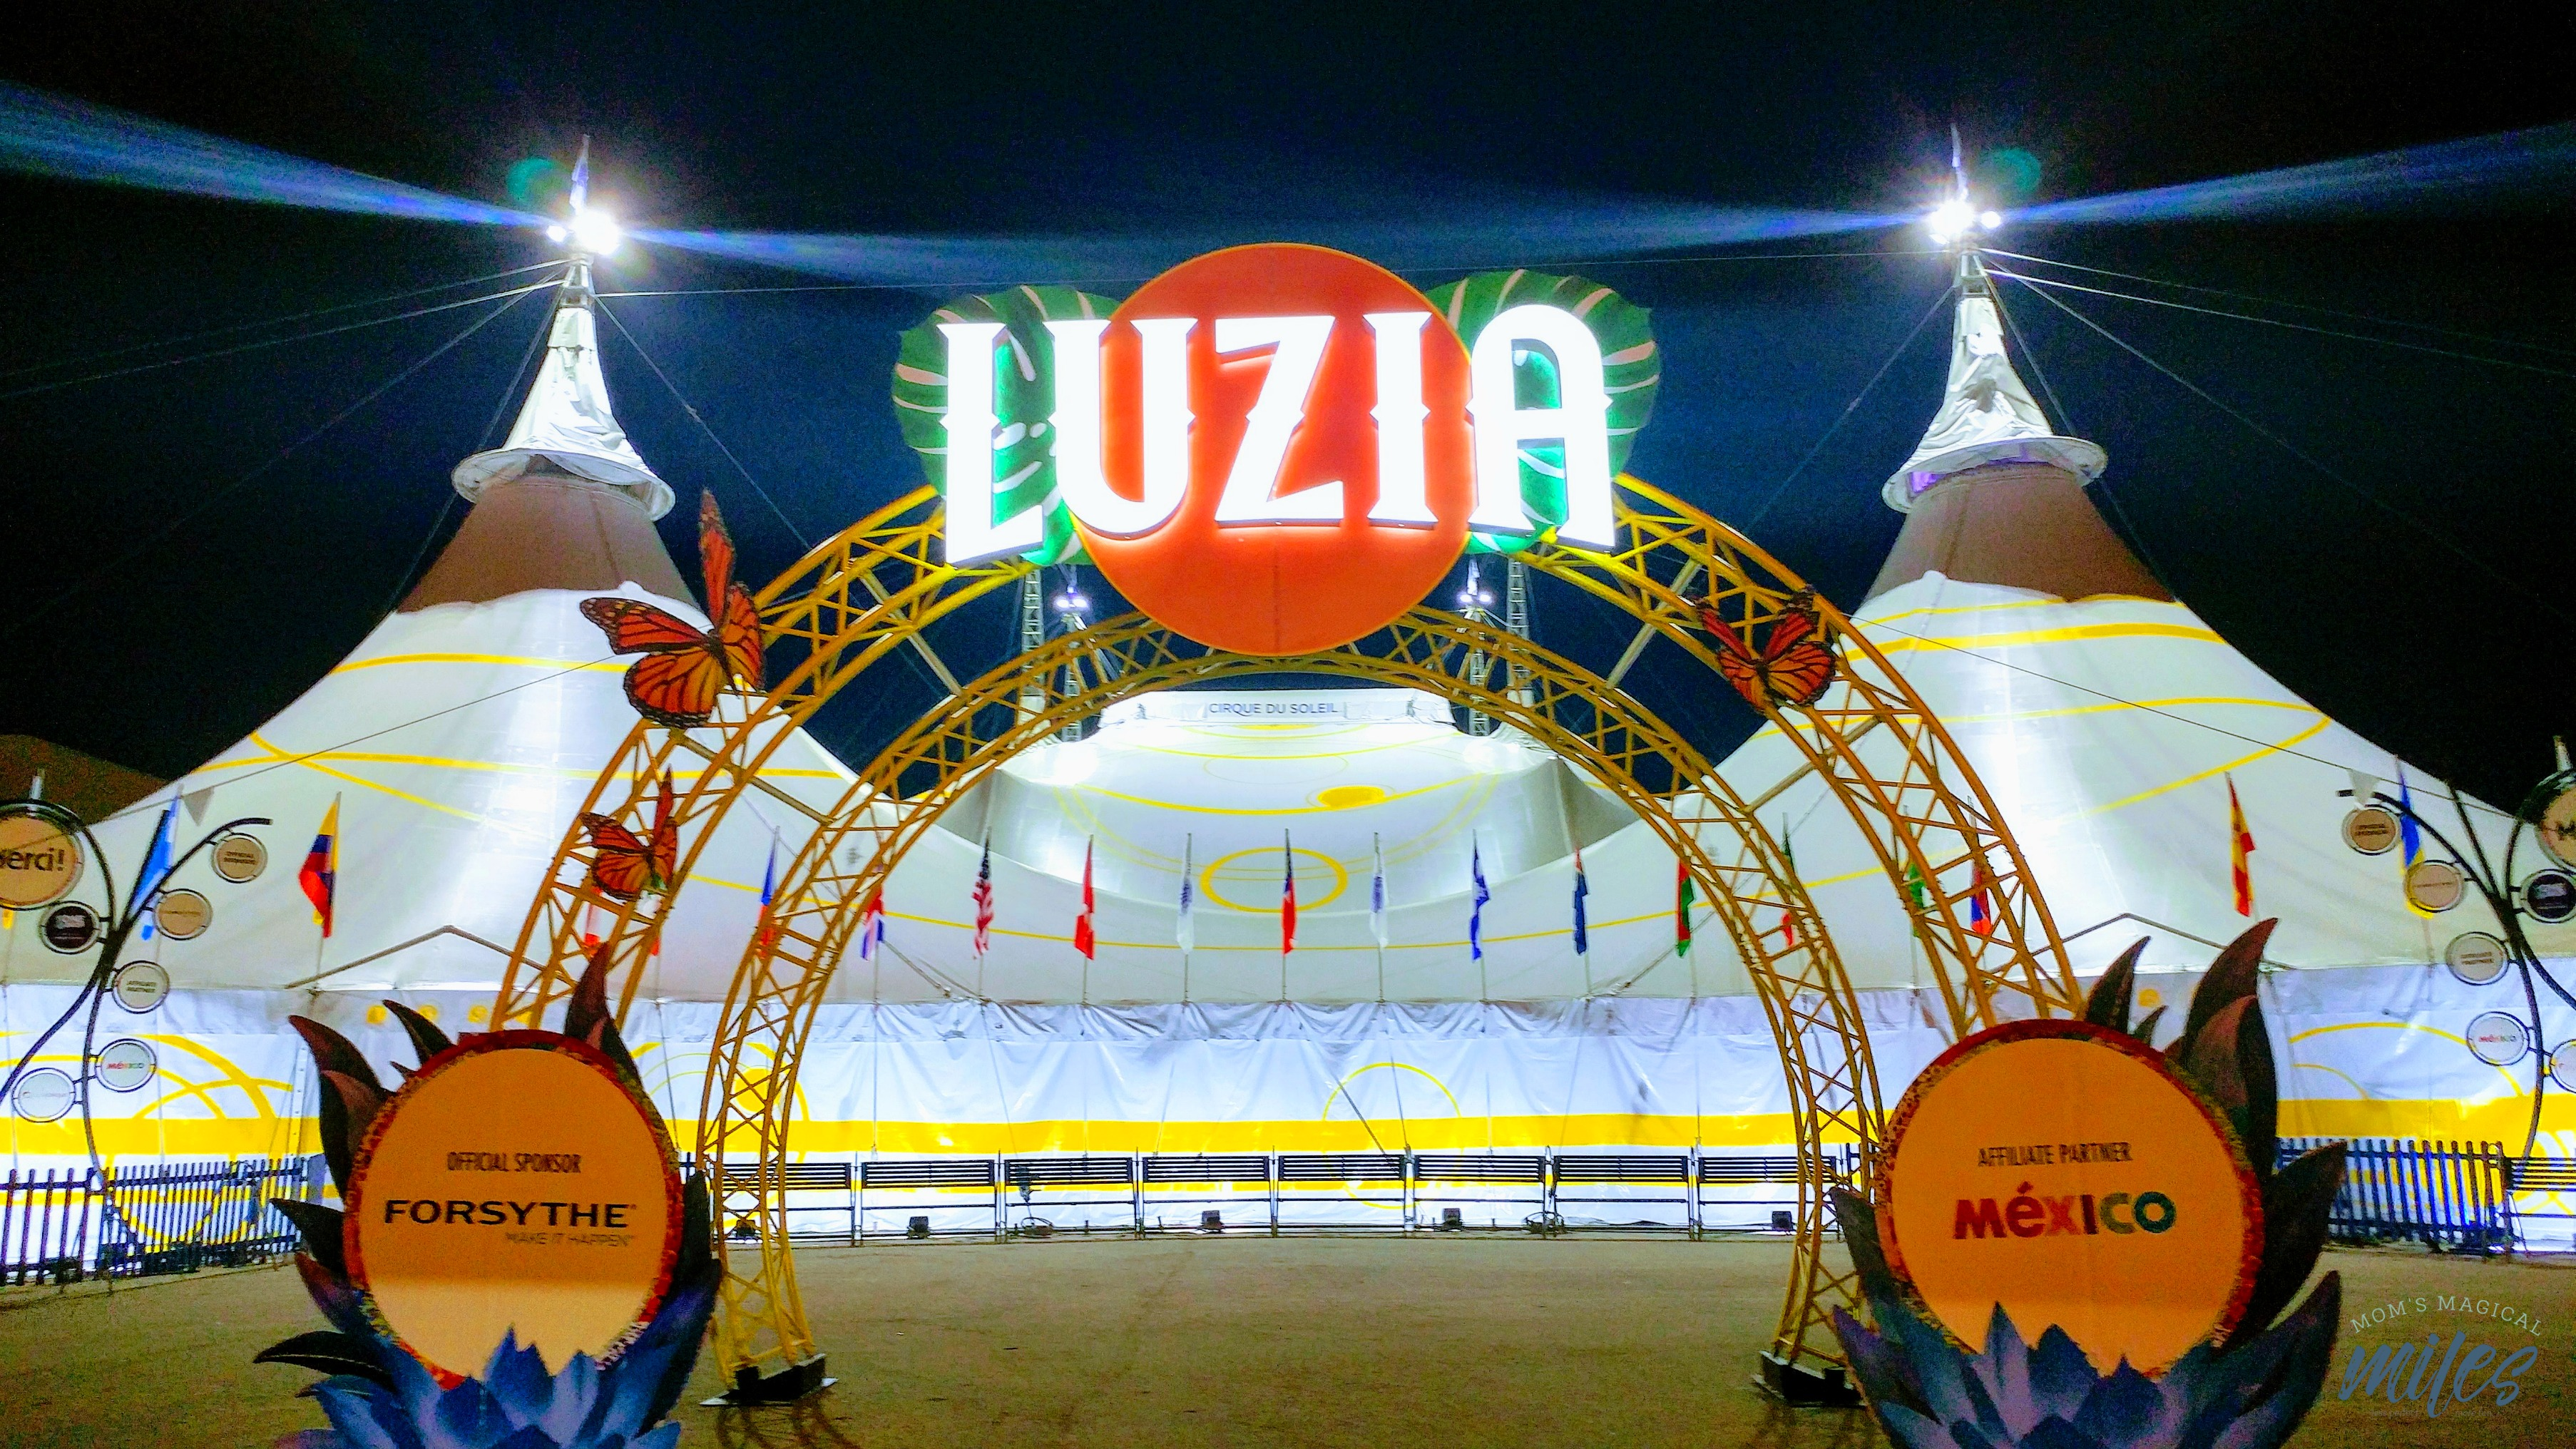 Cirque du Soleil LUZIA in midtown Atlanta is the perfect family outing this fall!